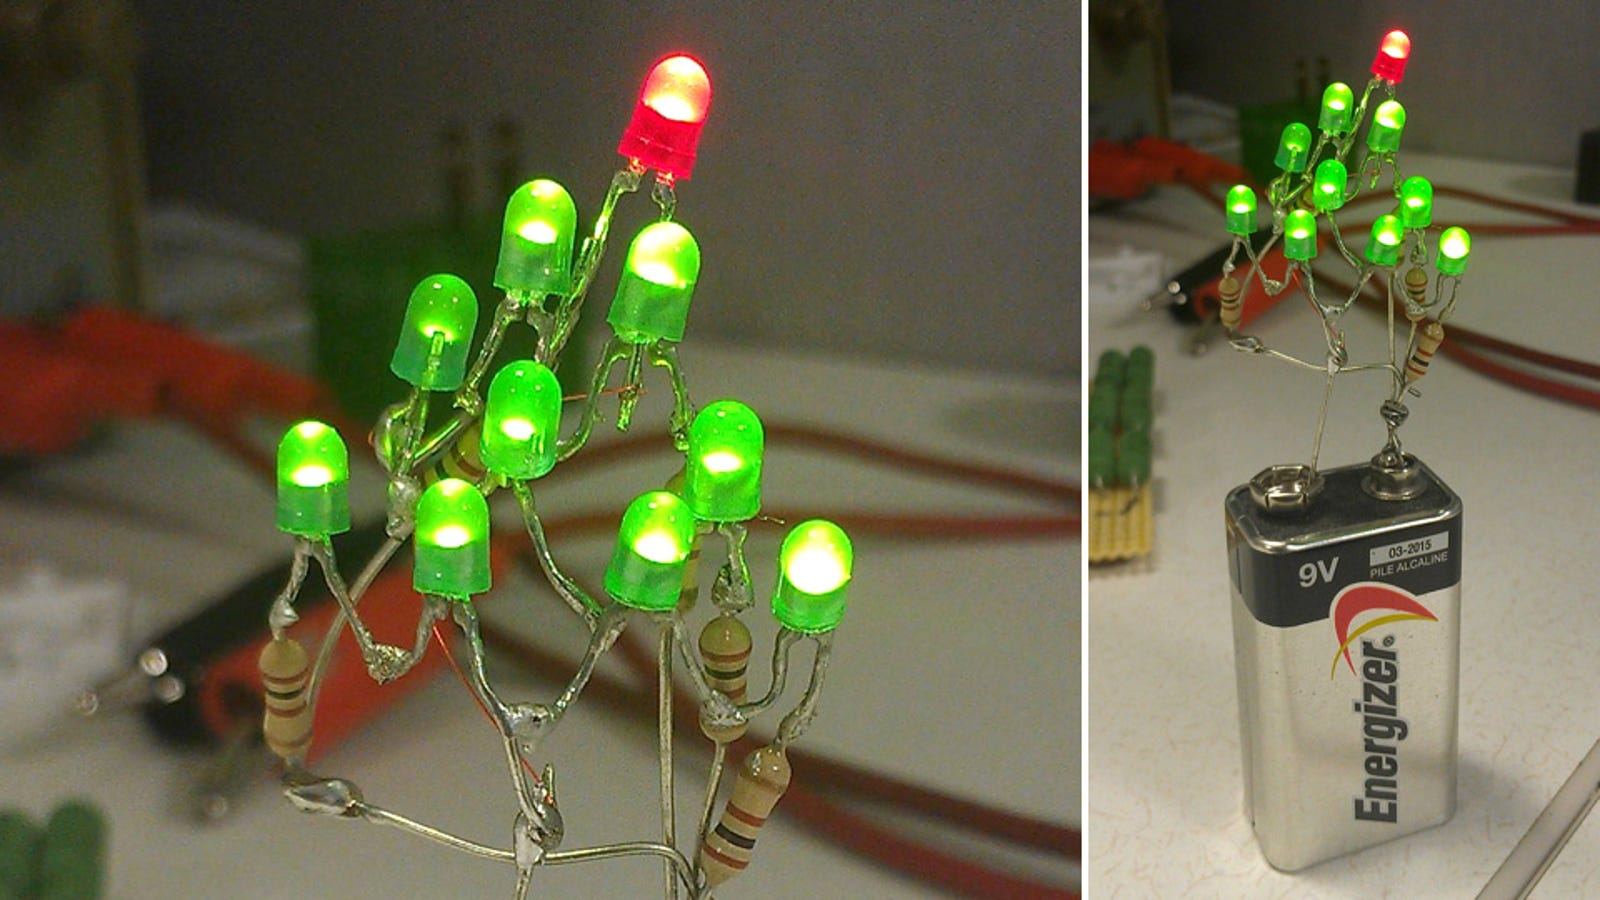 All You Need For A Christmas Tree Is Battery Leds And Little Ledchristmaslightingusingtransistors Know How